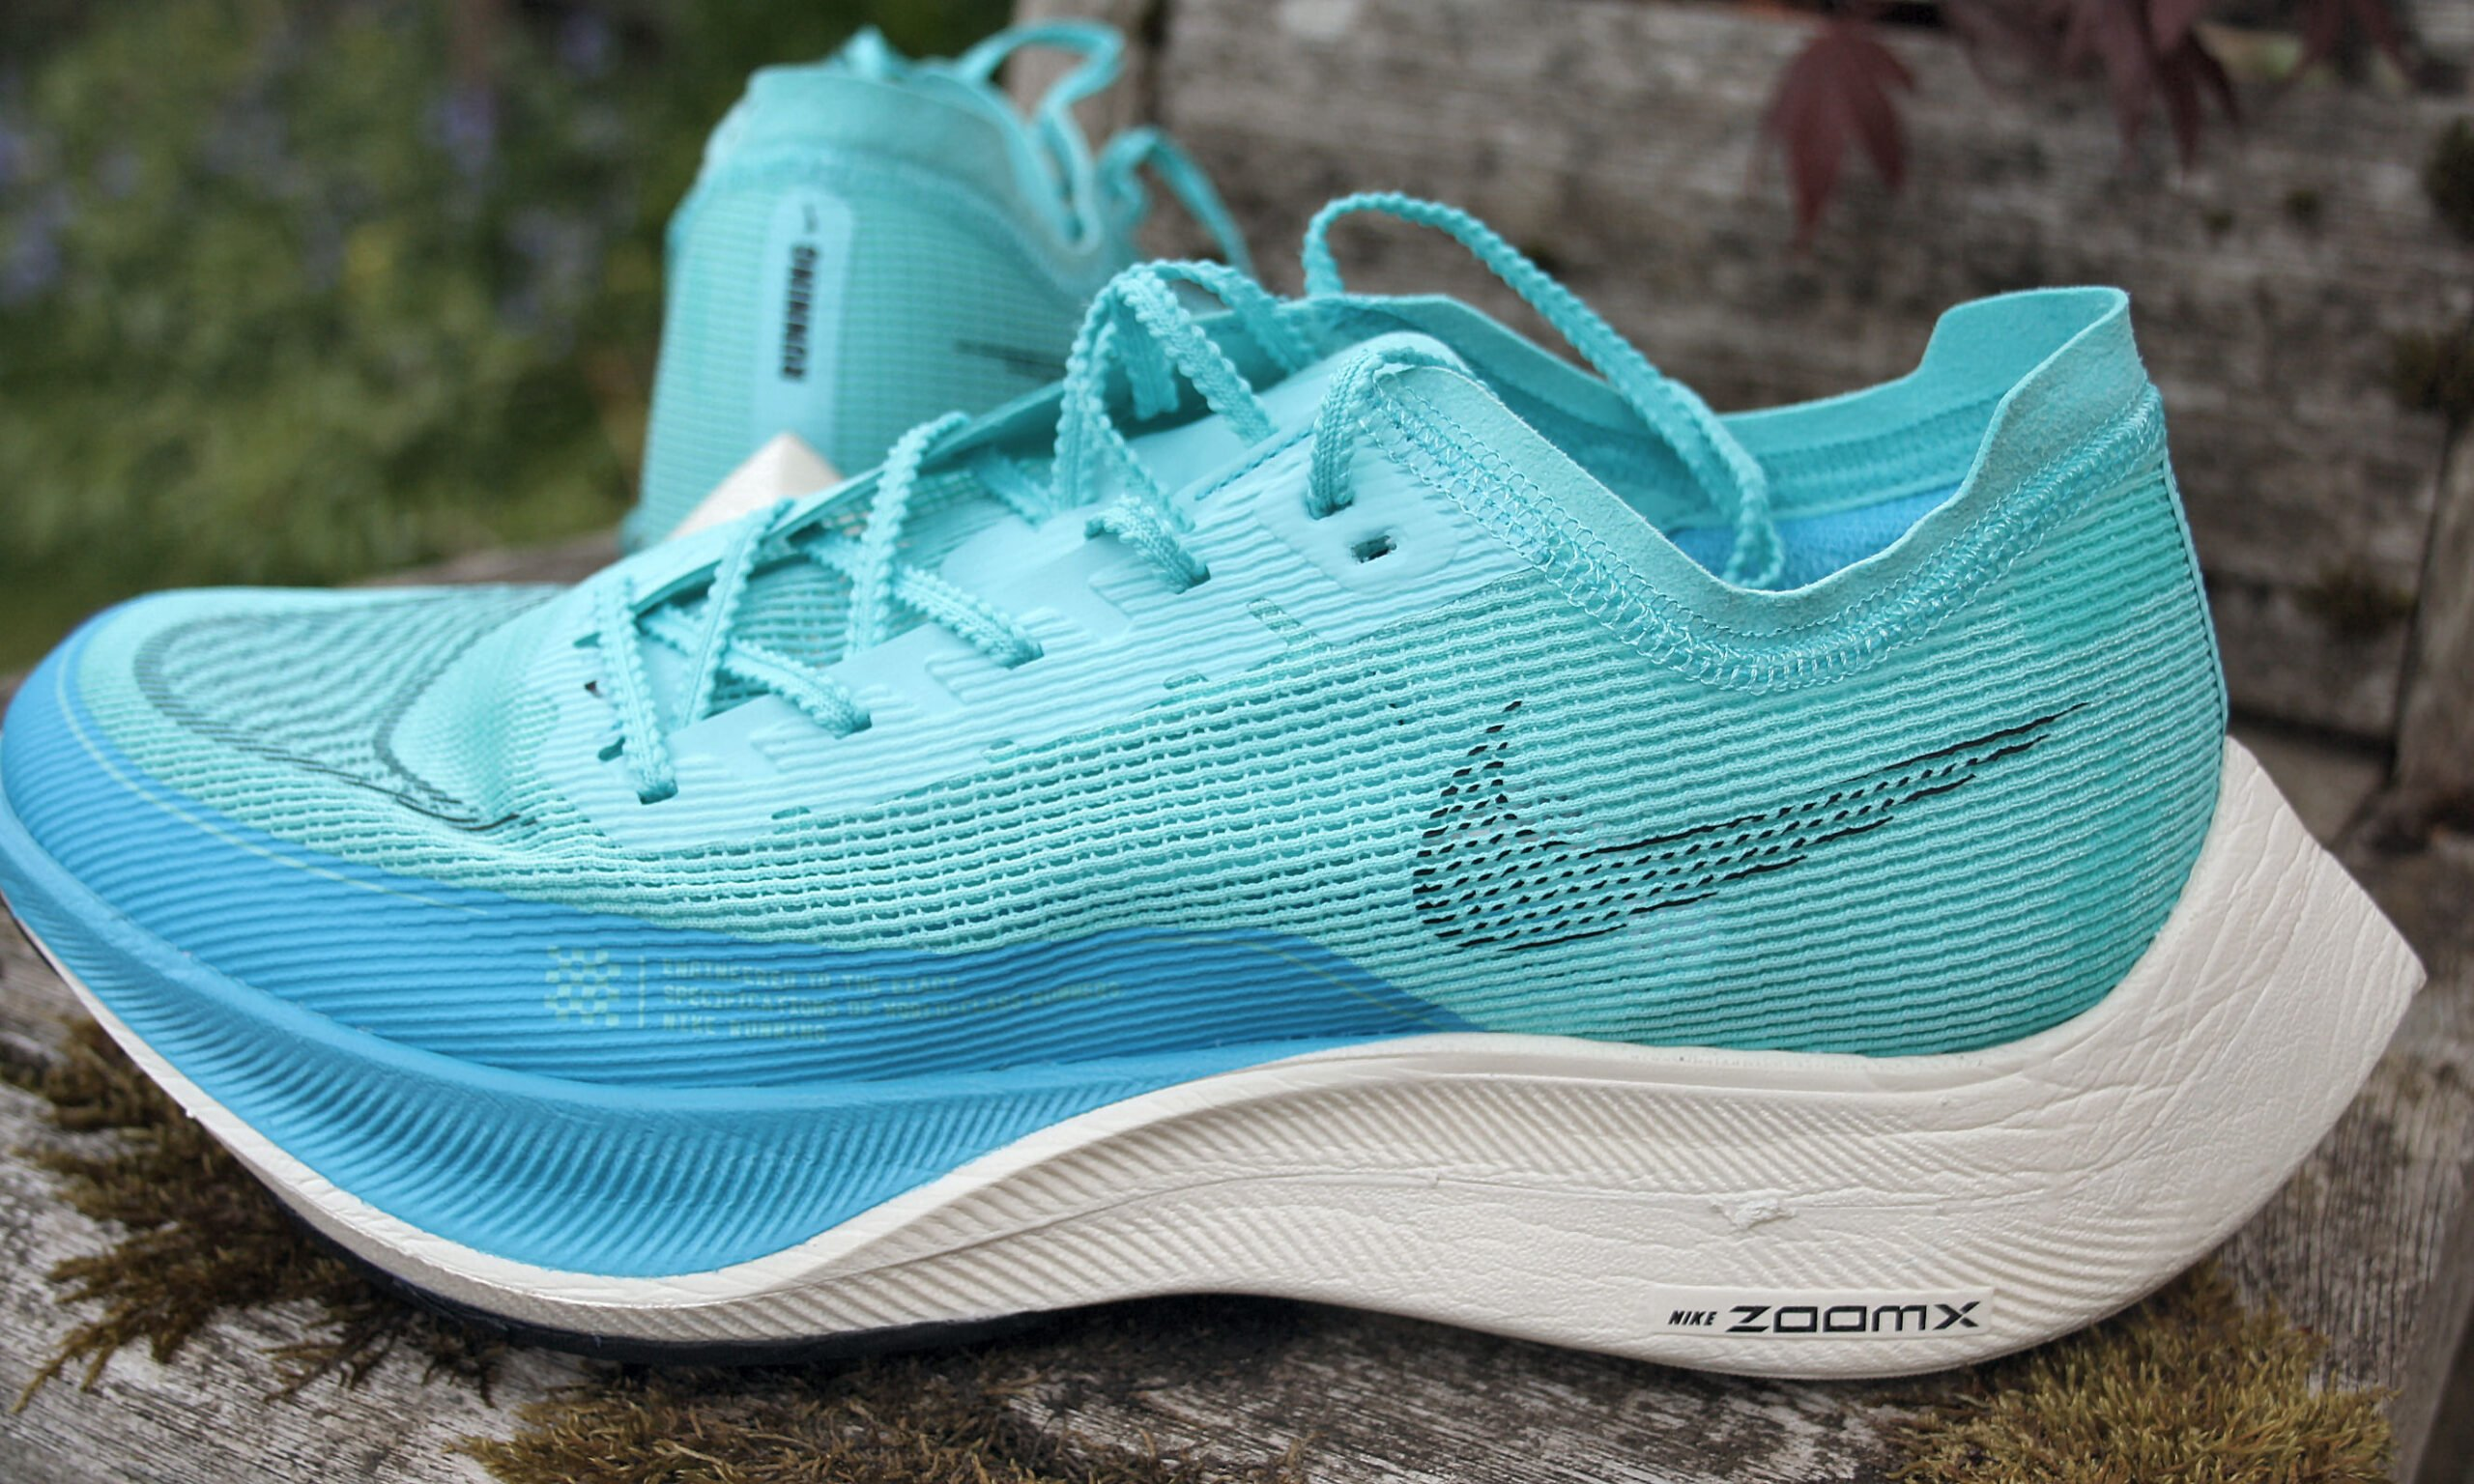 Nike ZoomX Vaporfly inside view